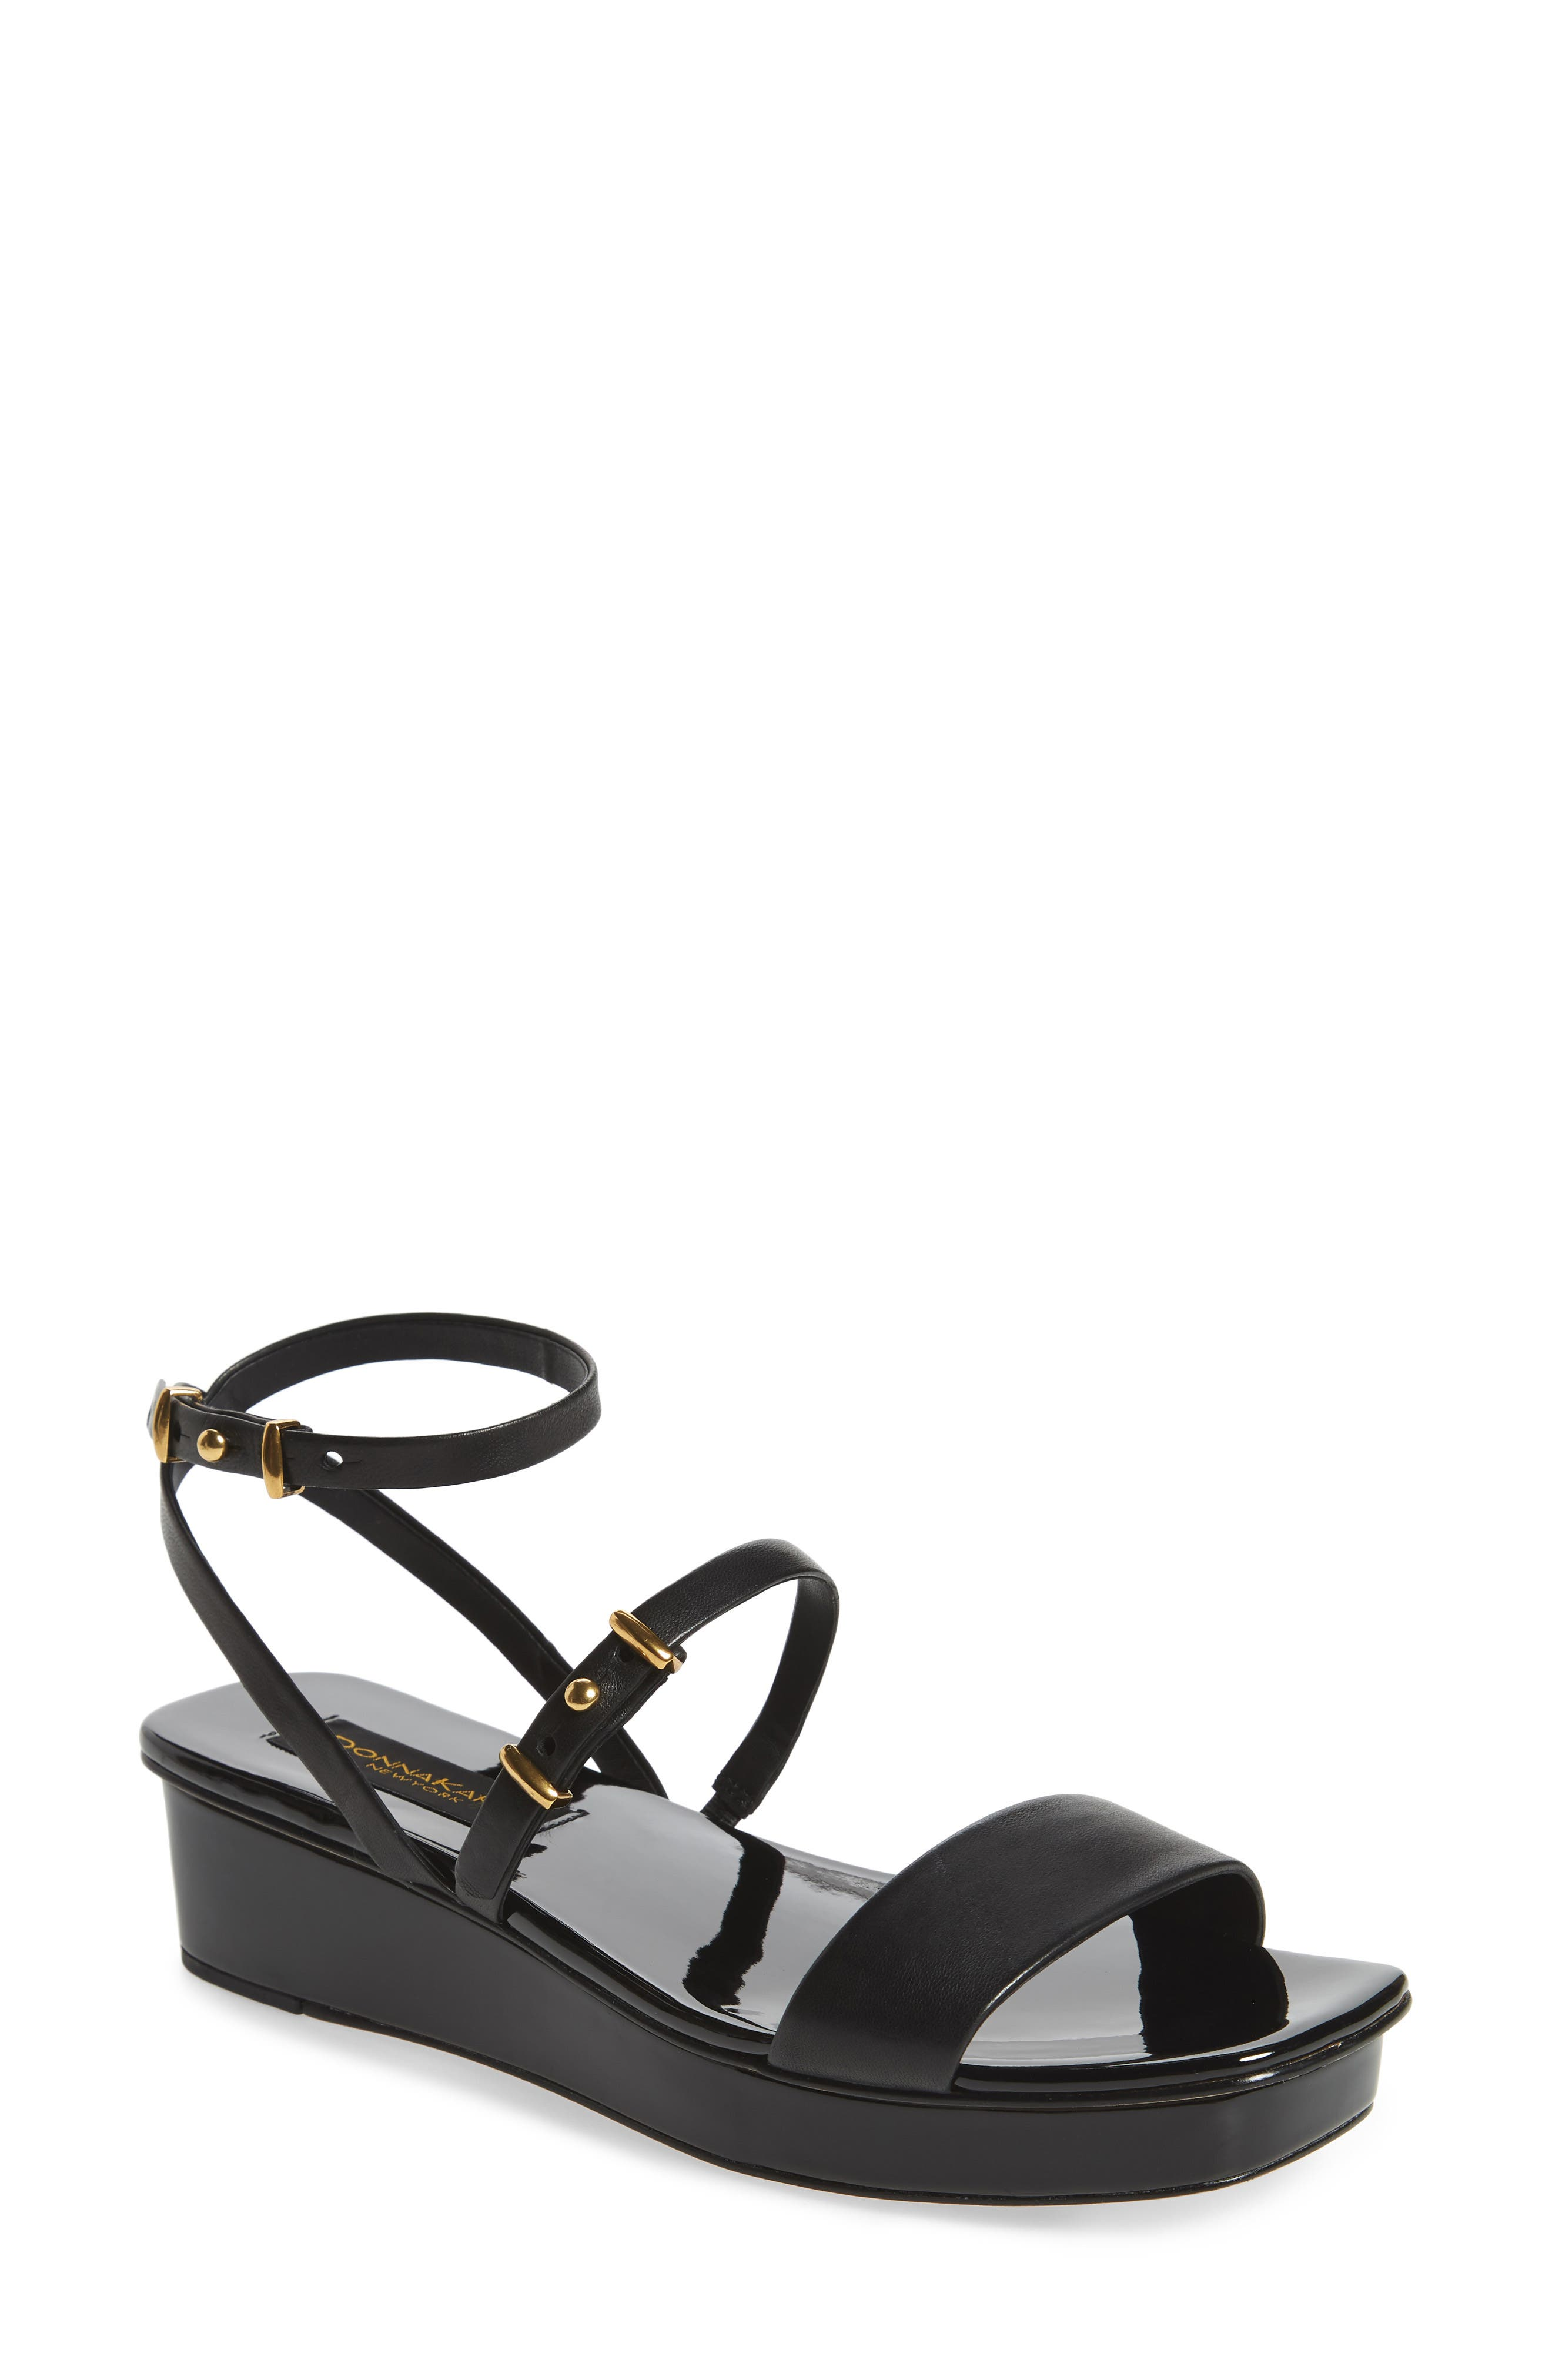 Ankle Strap Wedge Sandal,                             Main thumbnail 1, color,                             001